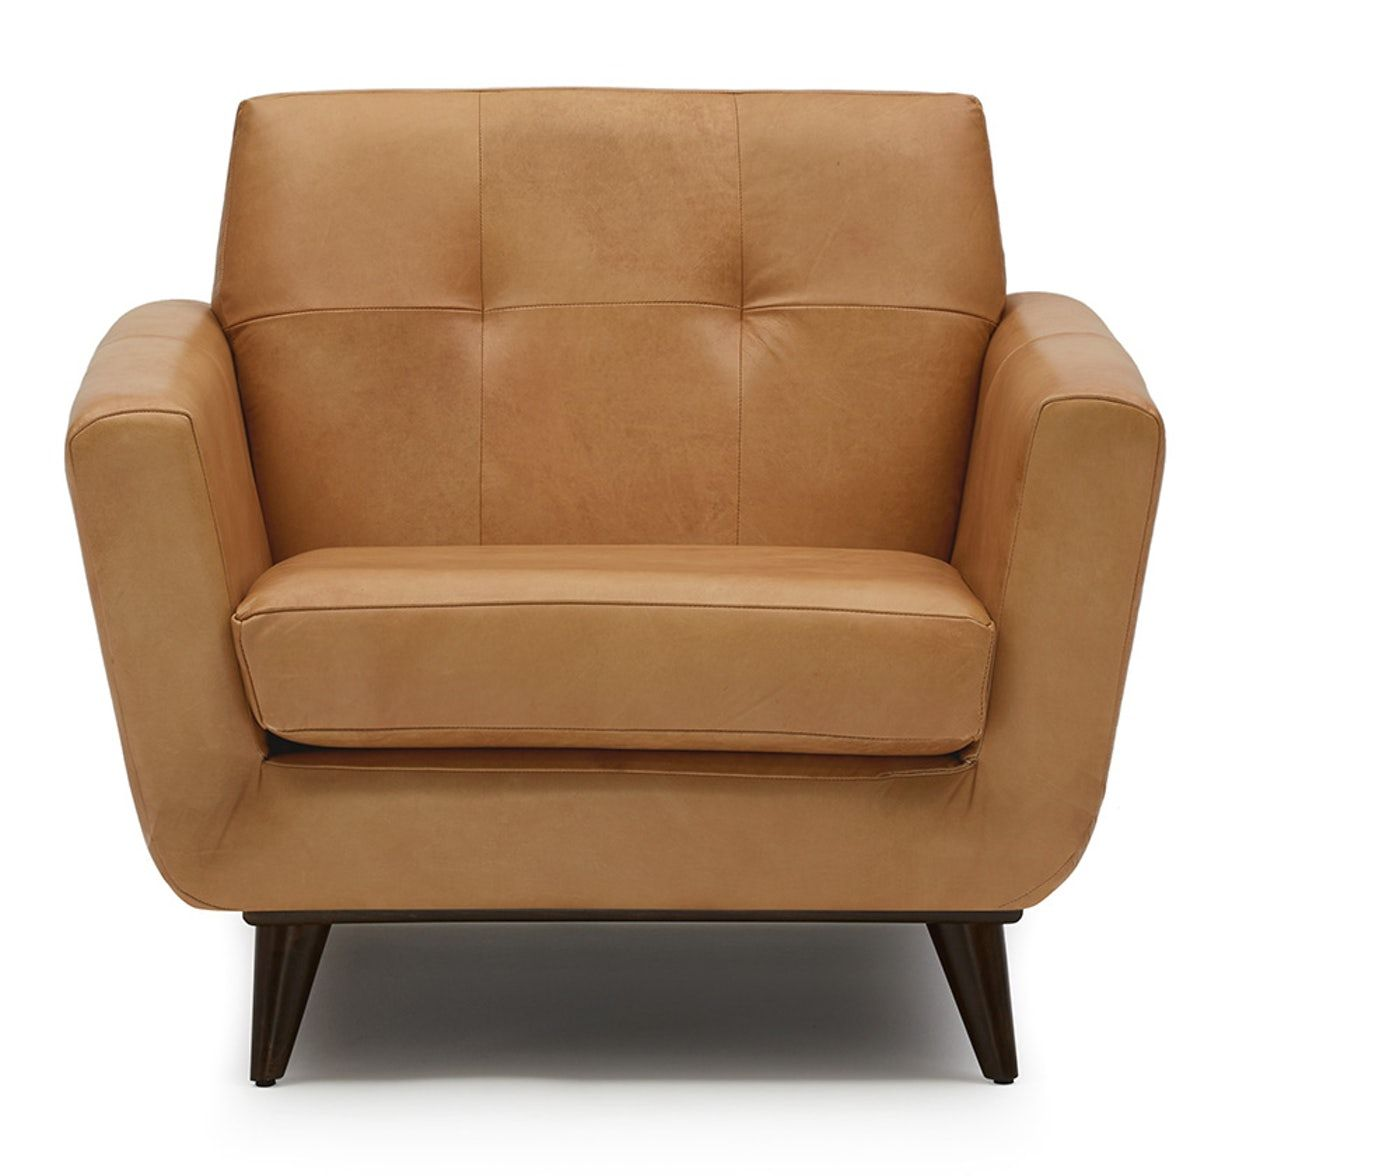 29++ Leather living room chairs for sale ideas